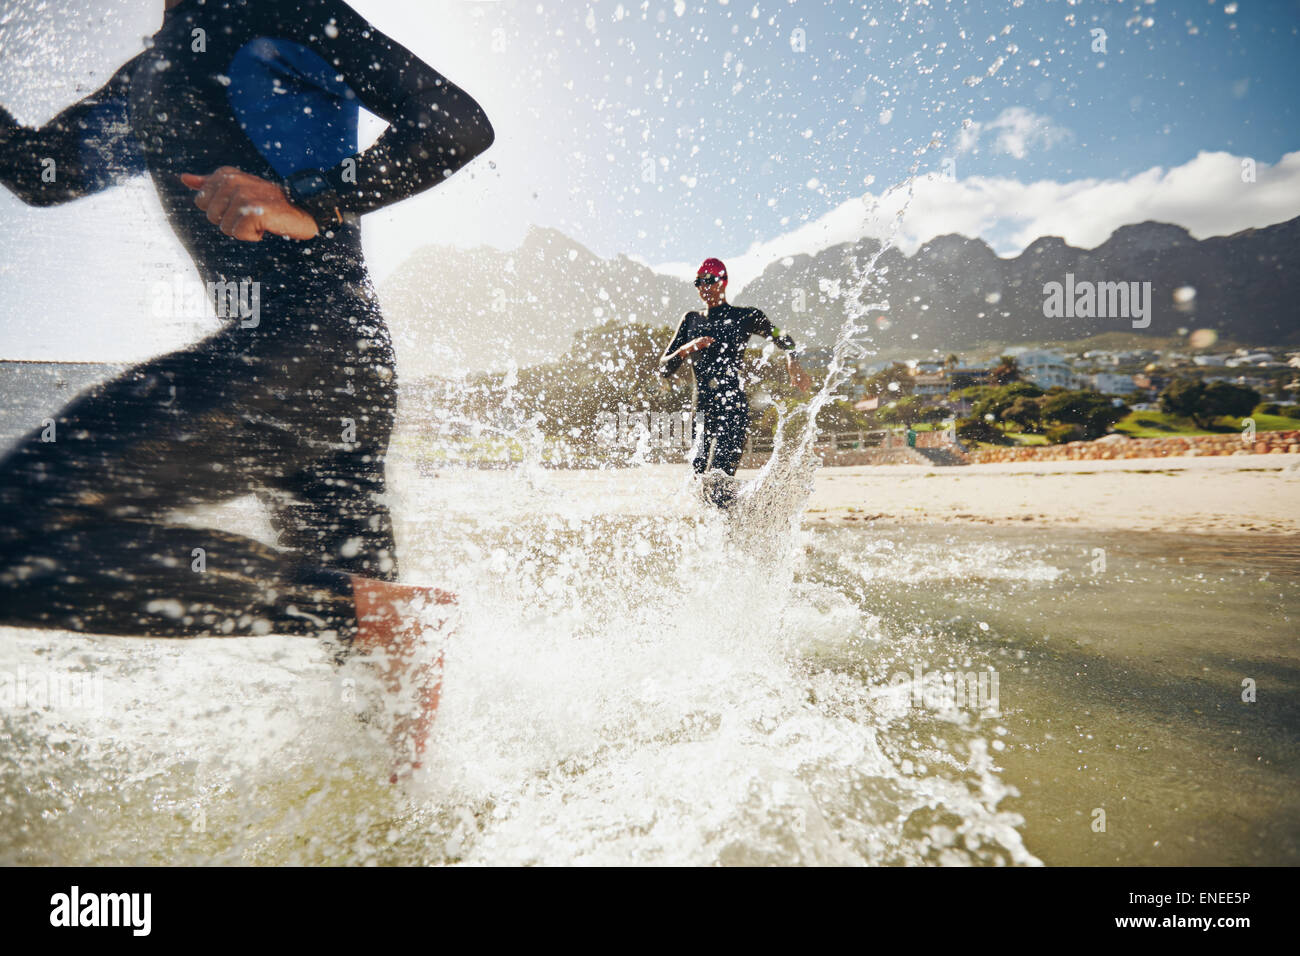 Image of triathletes rushing into the water. Athlete running into the water, training for a triathlon. - Stock Image